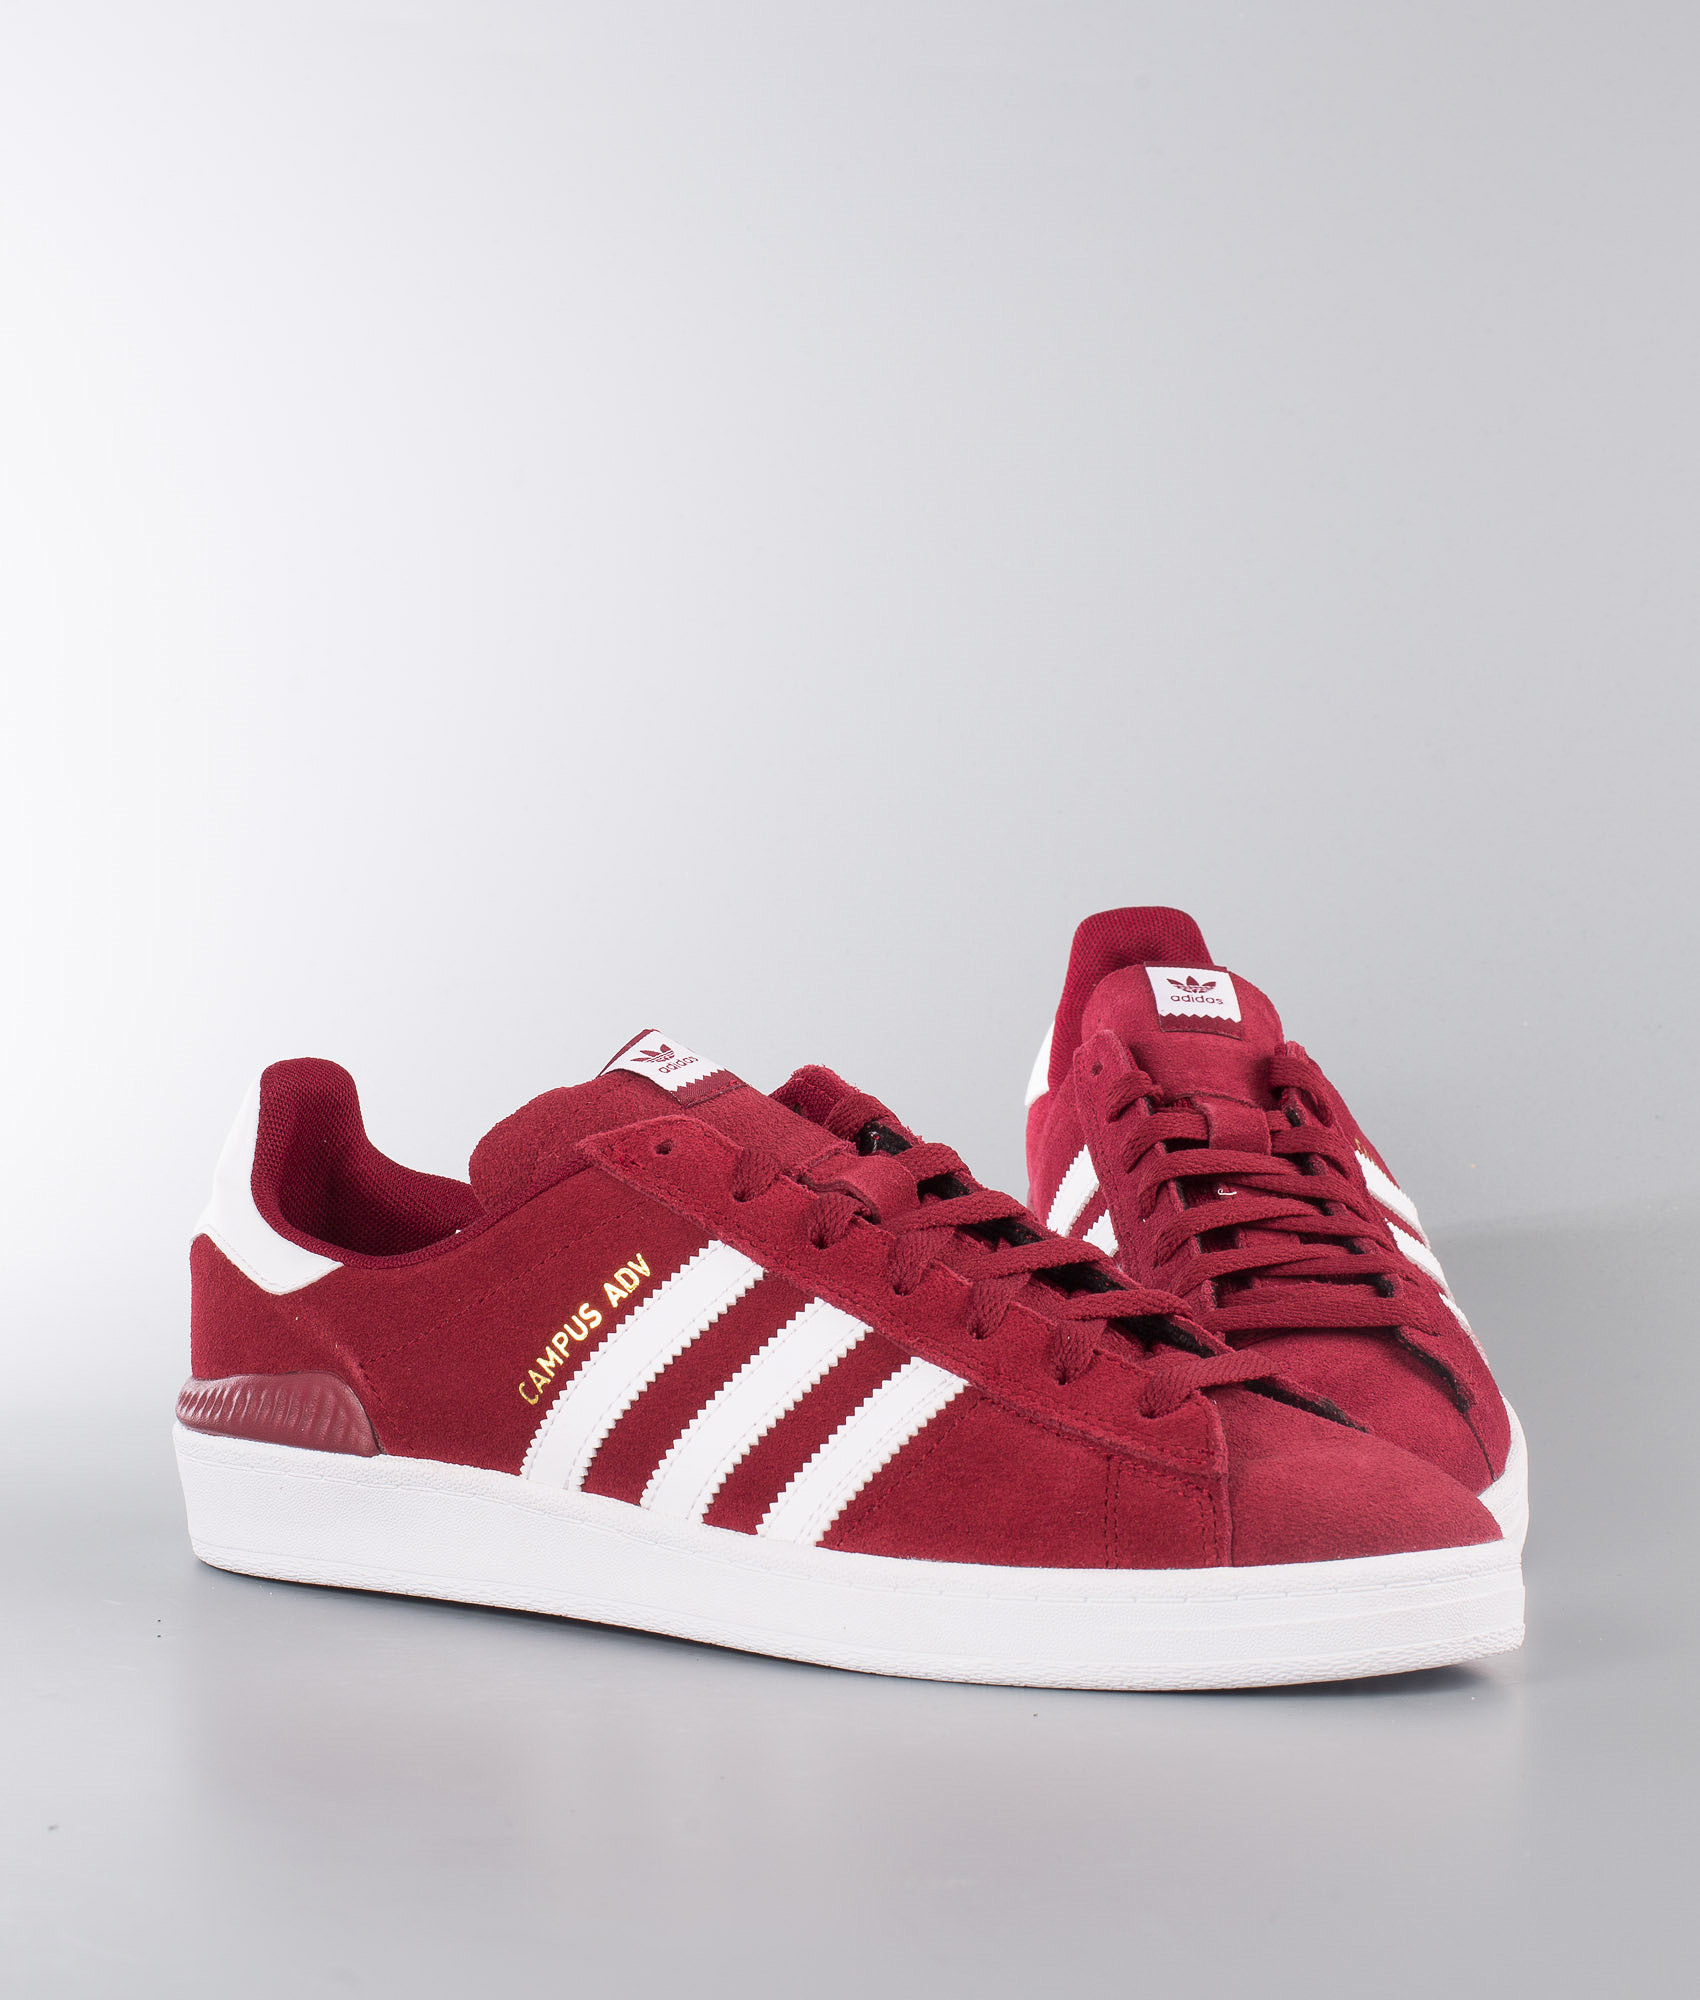 new arrivals 7ef20 acf49 Adidas Skateboarding Campus Adv Shoes